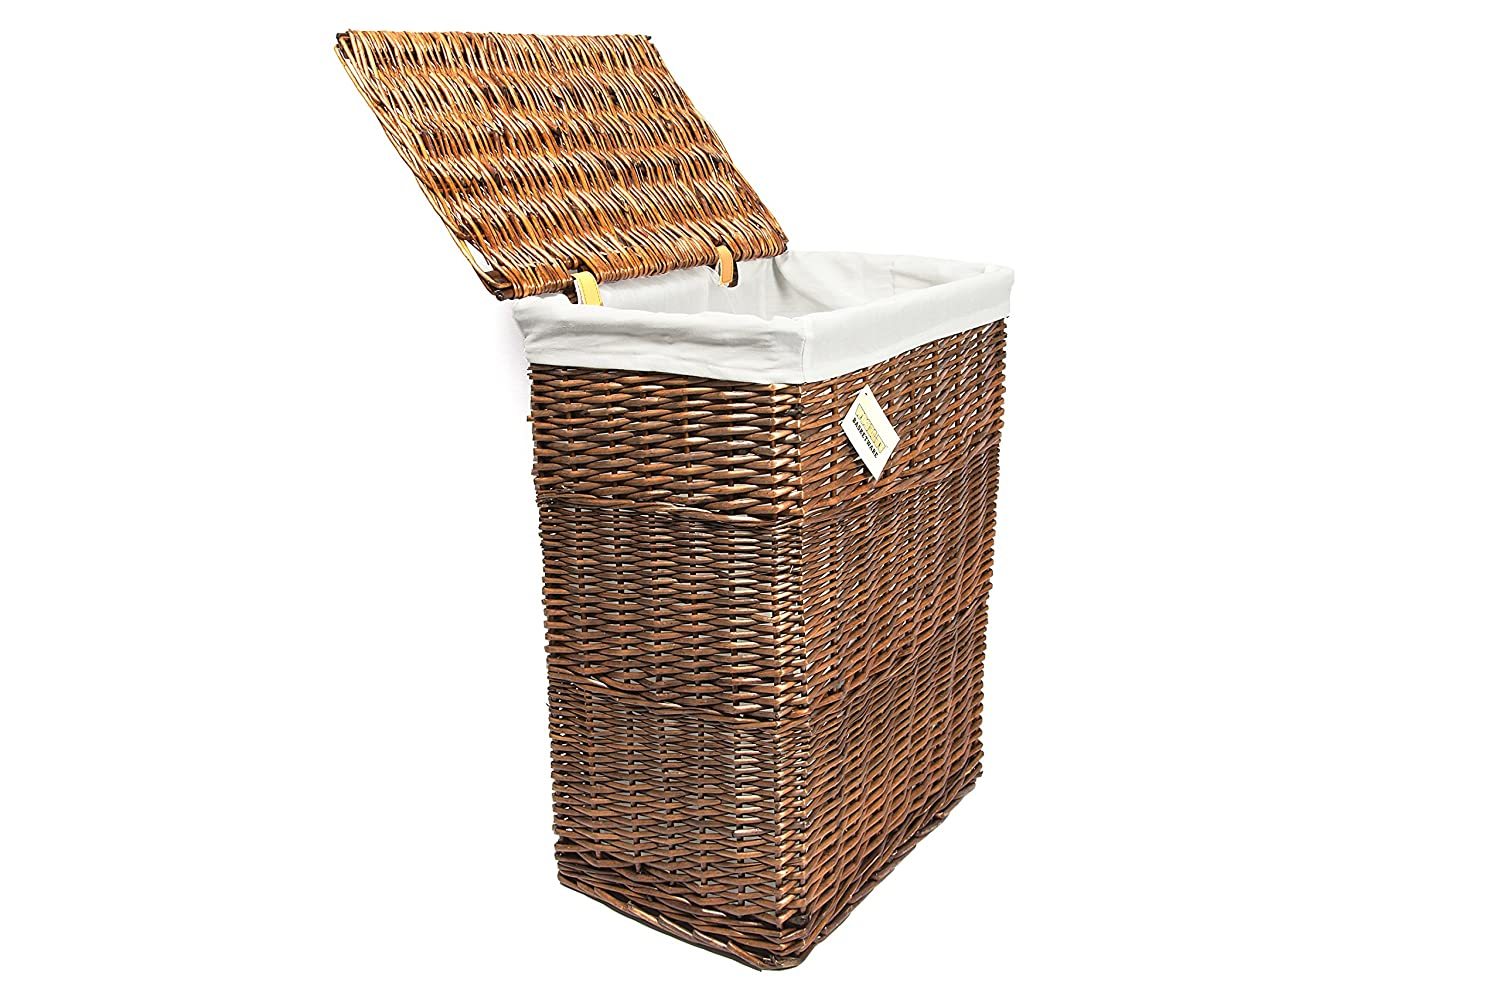 Fabric woodluv Brown Rectangular Laundry Linen Willow Wicker Basket with Lining Large